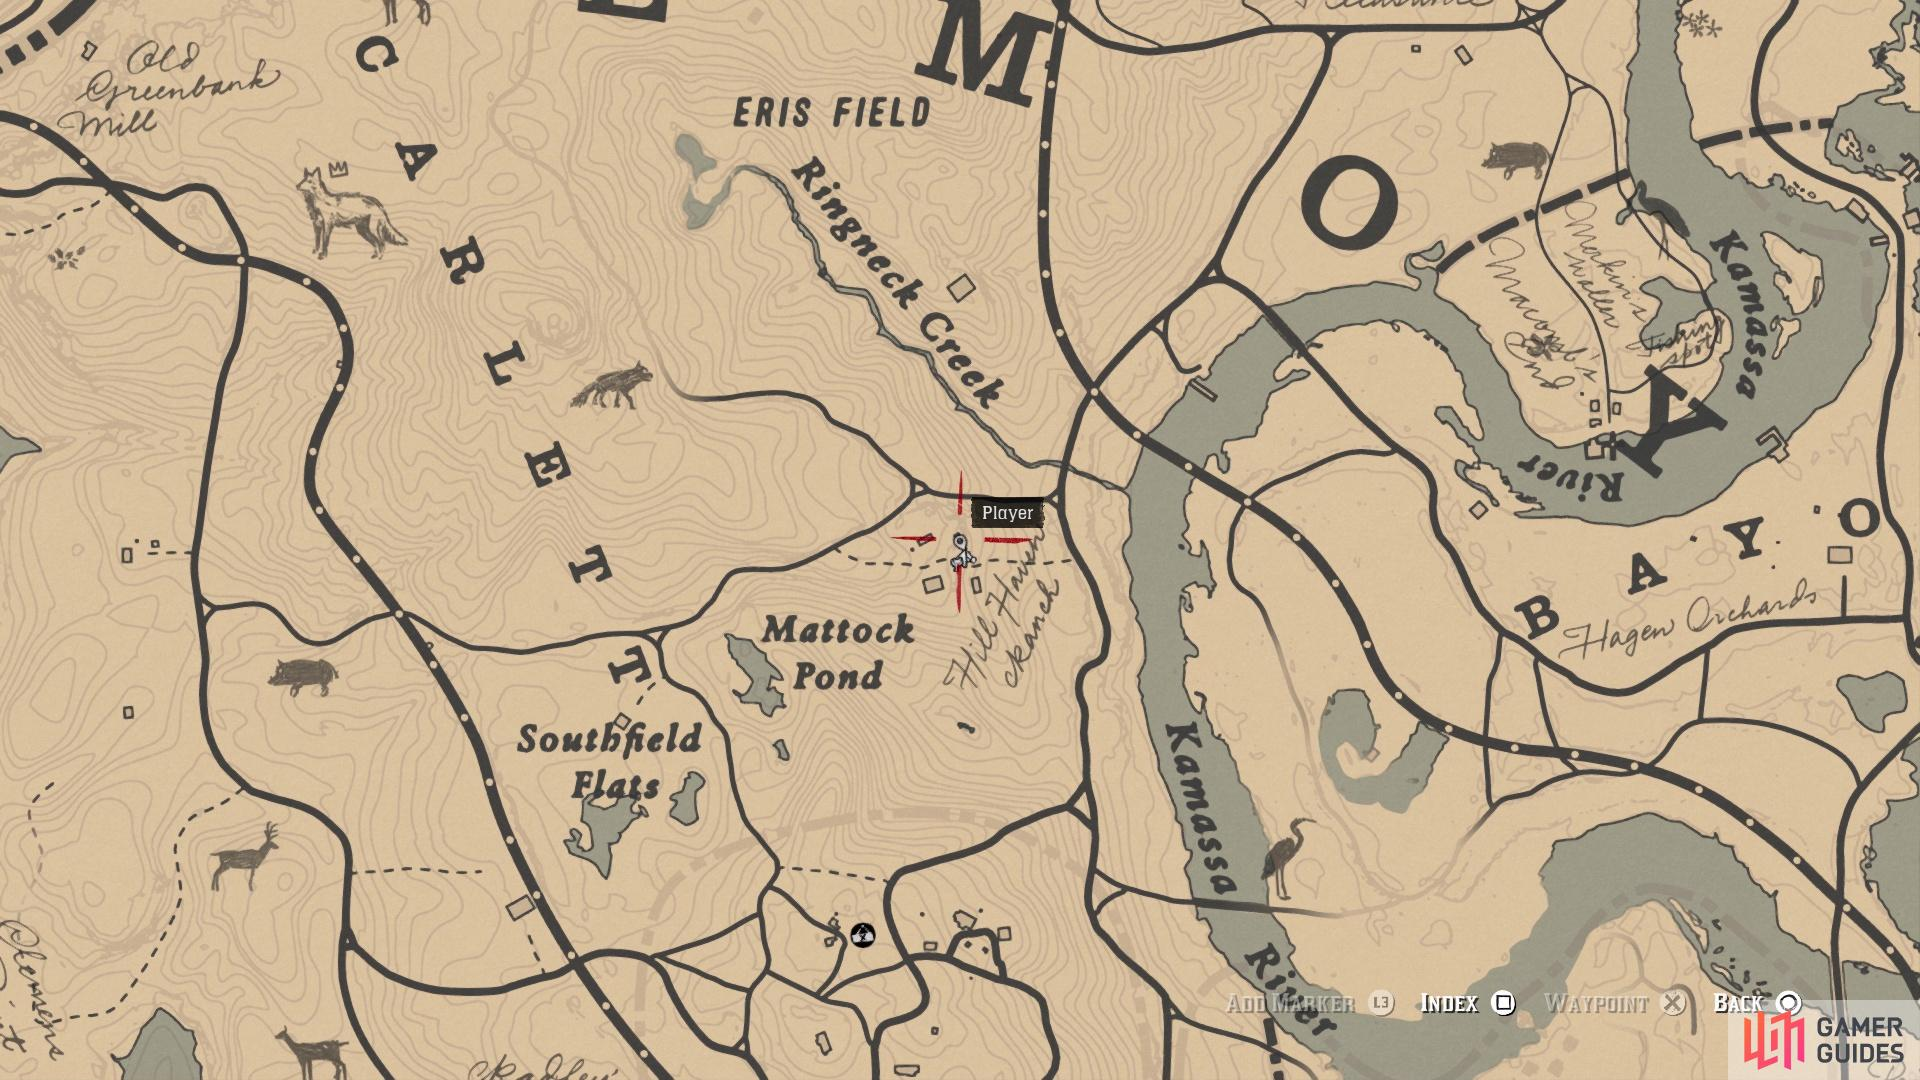 The location of the Cornelius Palmer card on the map